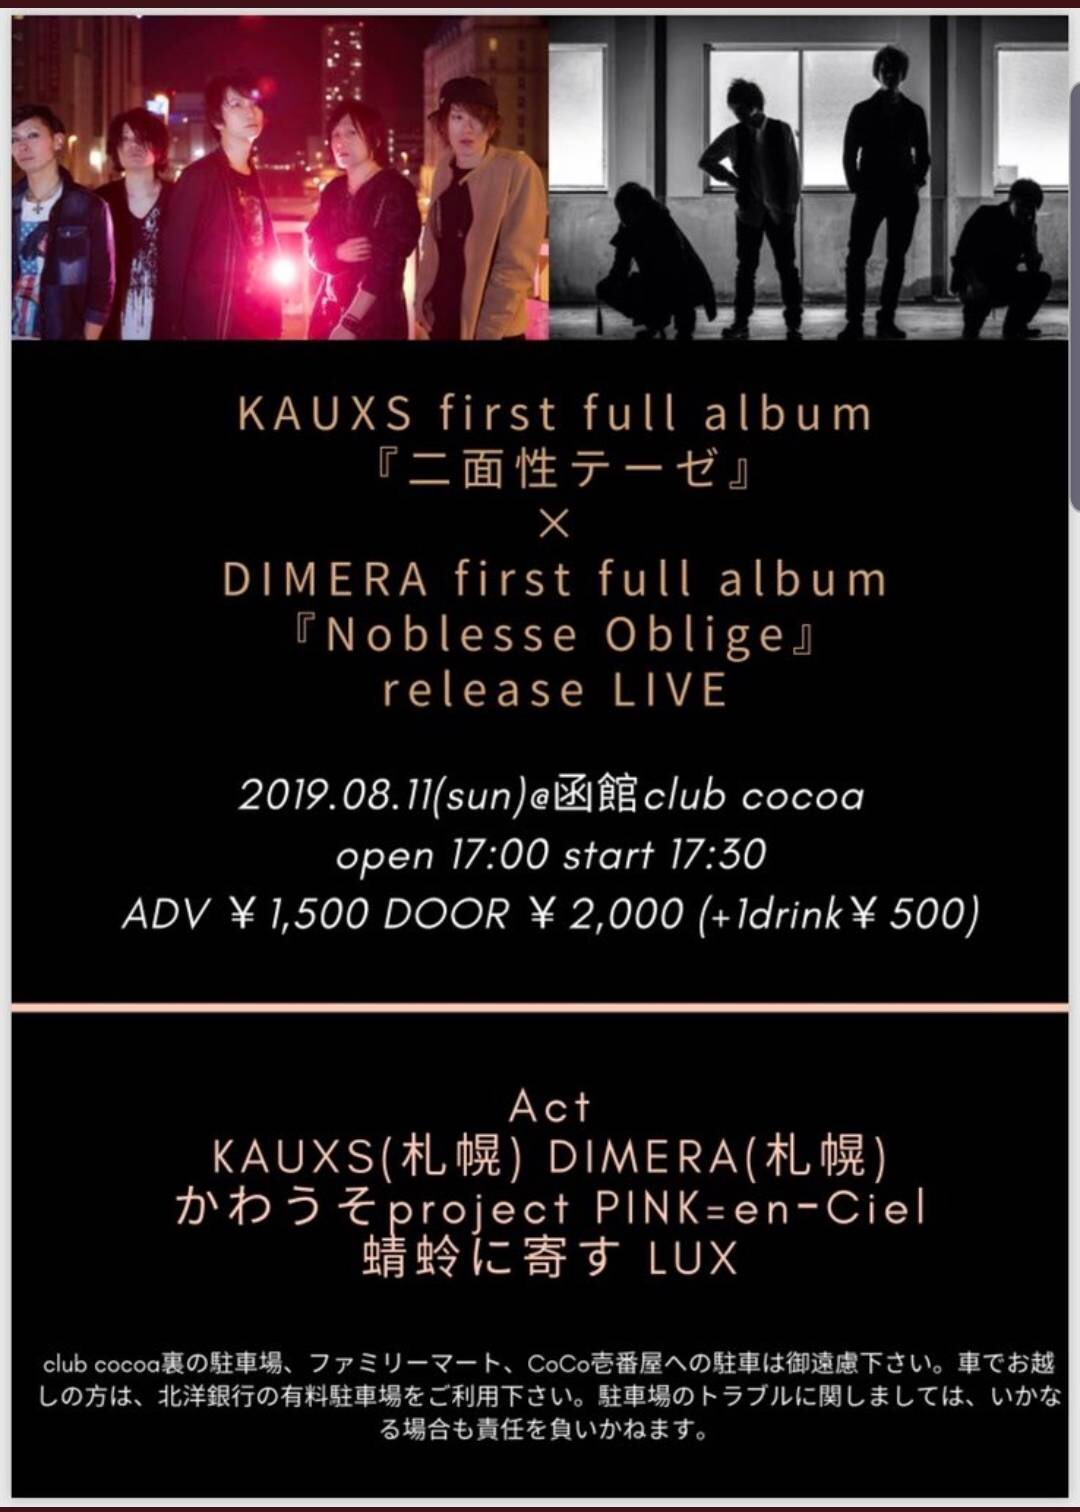 KAUXS first full album『二面性テーゼ』× DIMERA first full album 『Noblesse Oblige』release LIVE (Band Live) @ 函館 Club COCOA